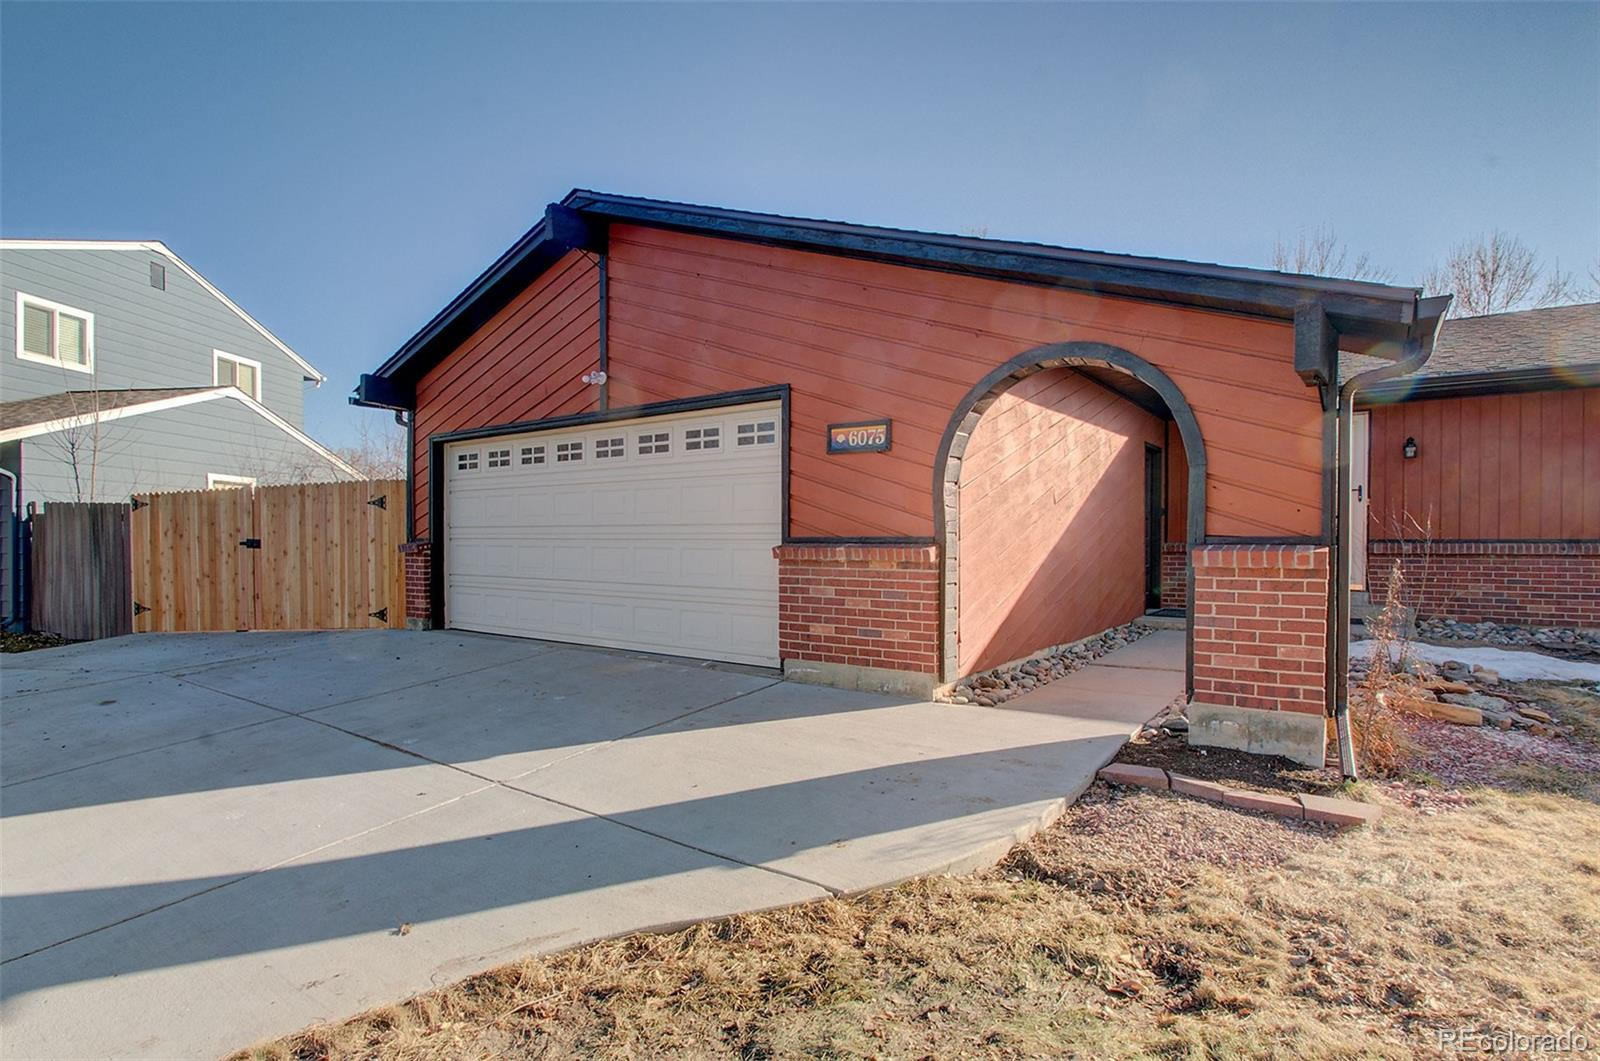 MLS# 2260867 - 3 - 6075 W 82nd Place, Arvada, CO 80003